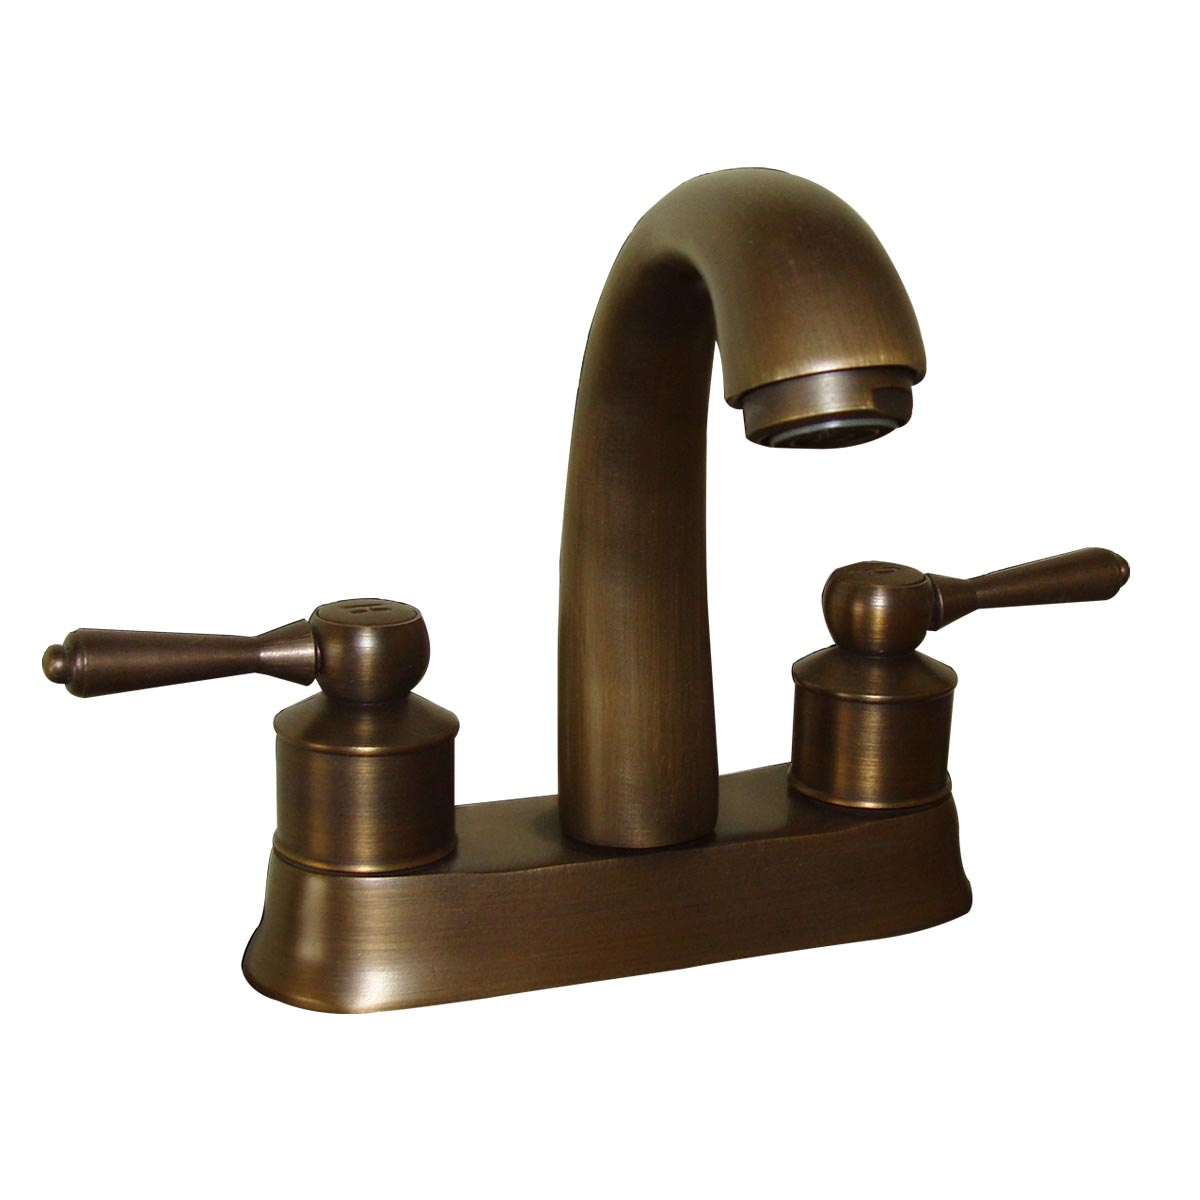 Ideas, antique brass bathroom faucets centerset antique brass bathroom faucets centerset antique brass classic bathroom sink centerset 2 lever 1200 x 1200  .